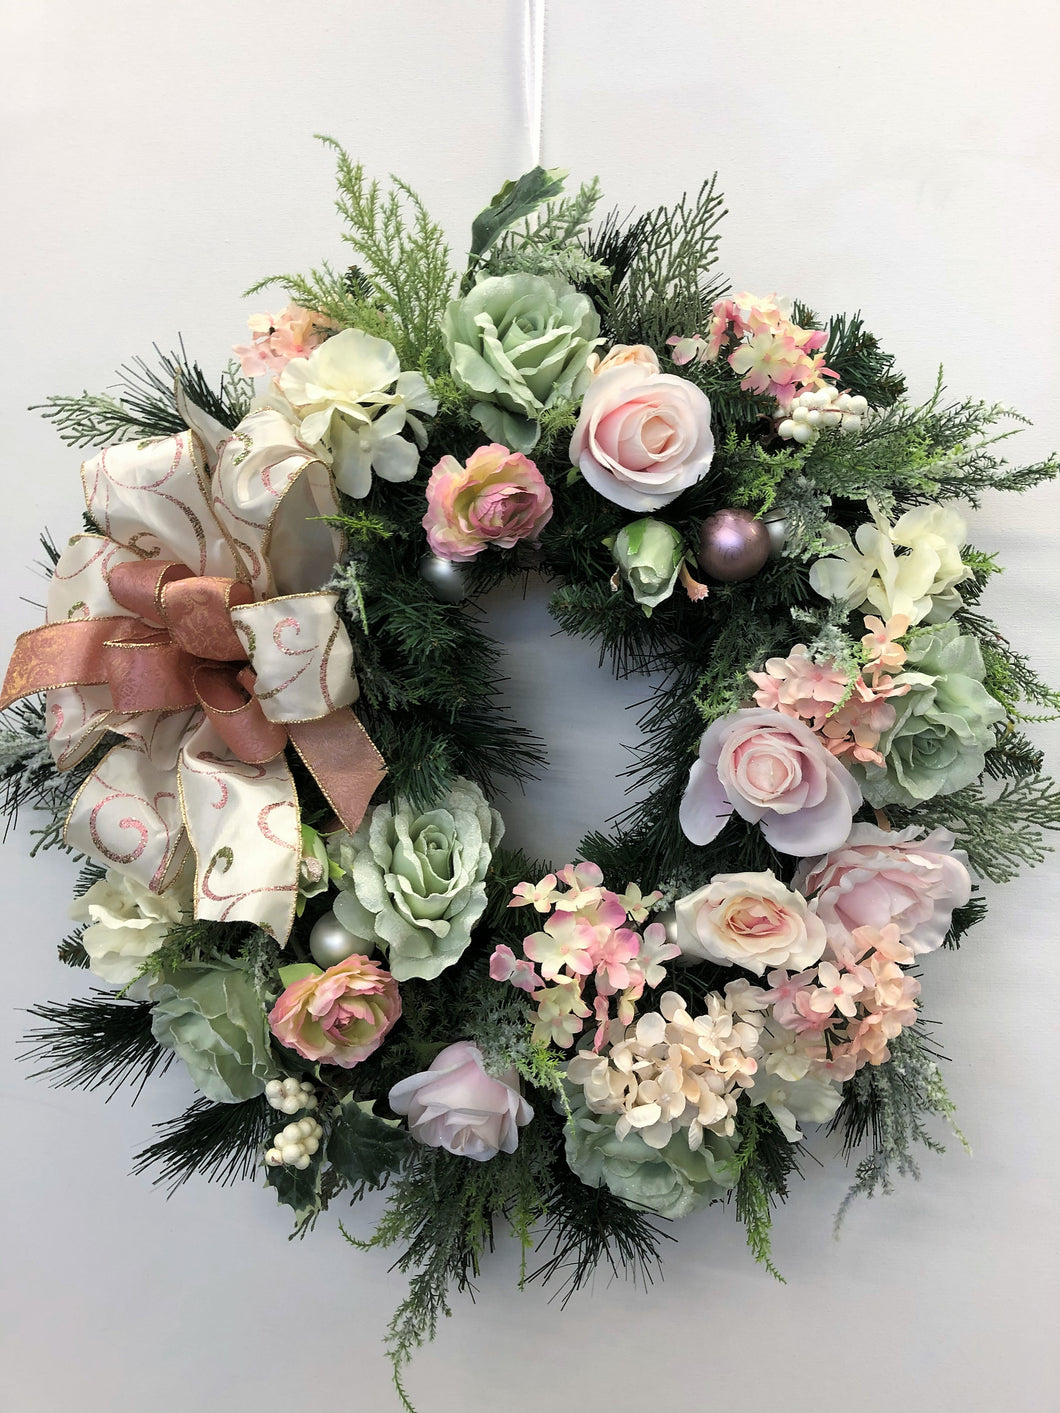 Pink, Light Green, and Cream Silk Floral Holiday Christmas Wreath/Hol120 - April's Garden Wreath